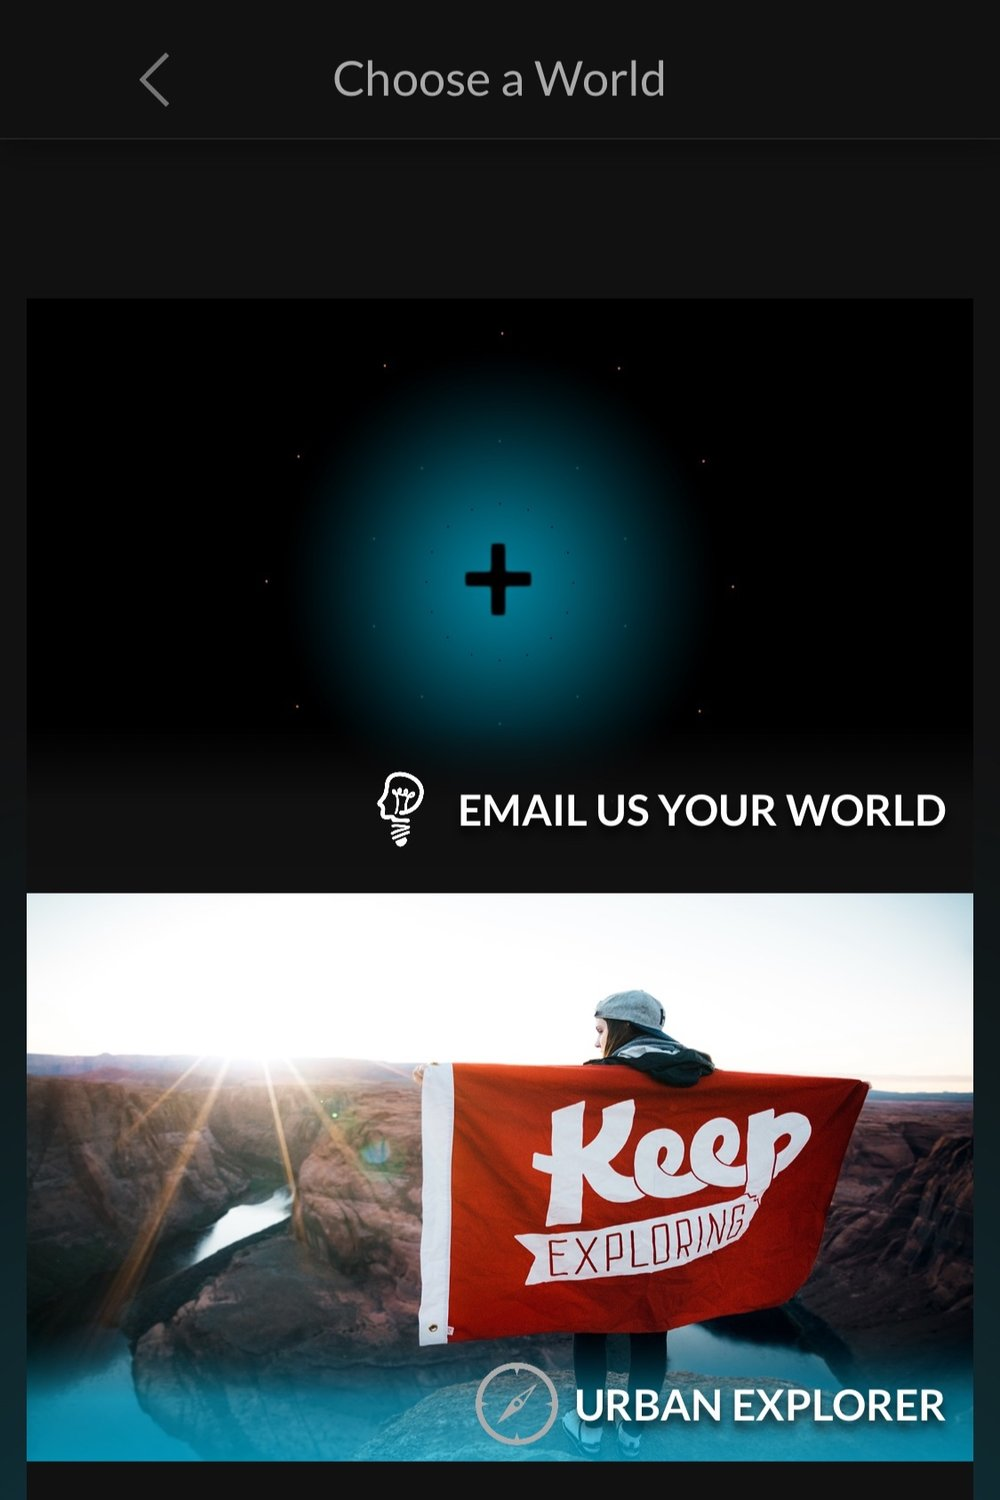 CityXcape ask you to choose a world before showing you secret spots. -